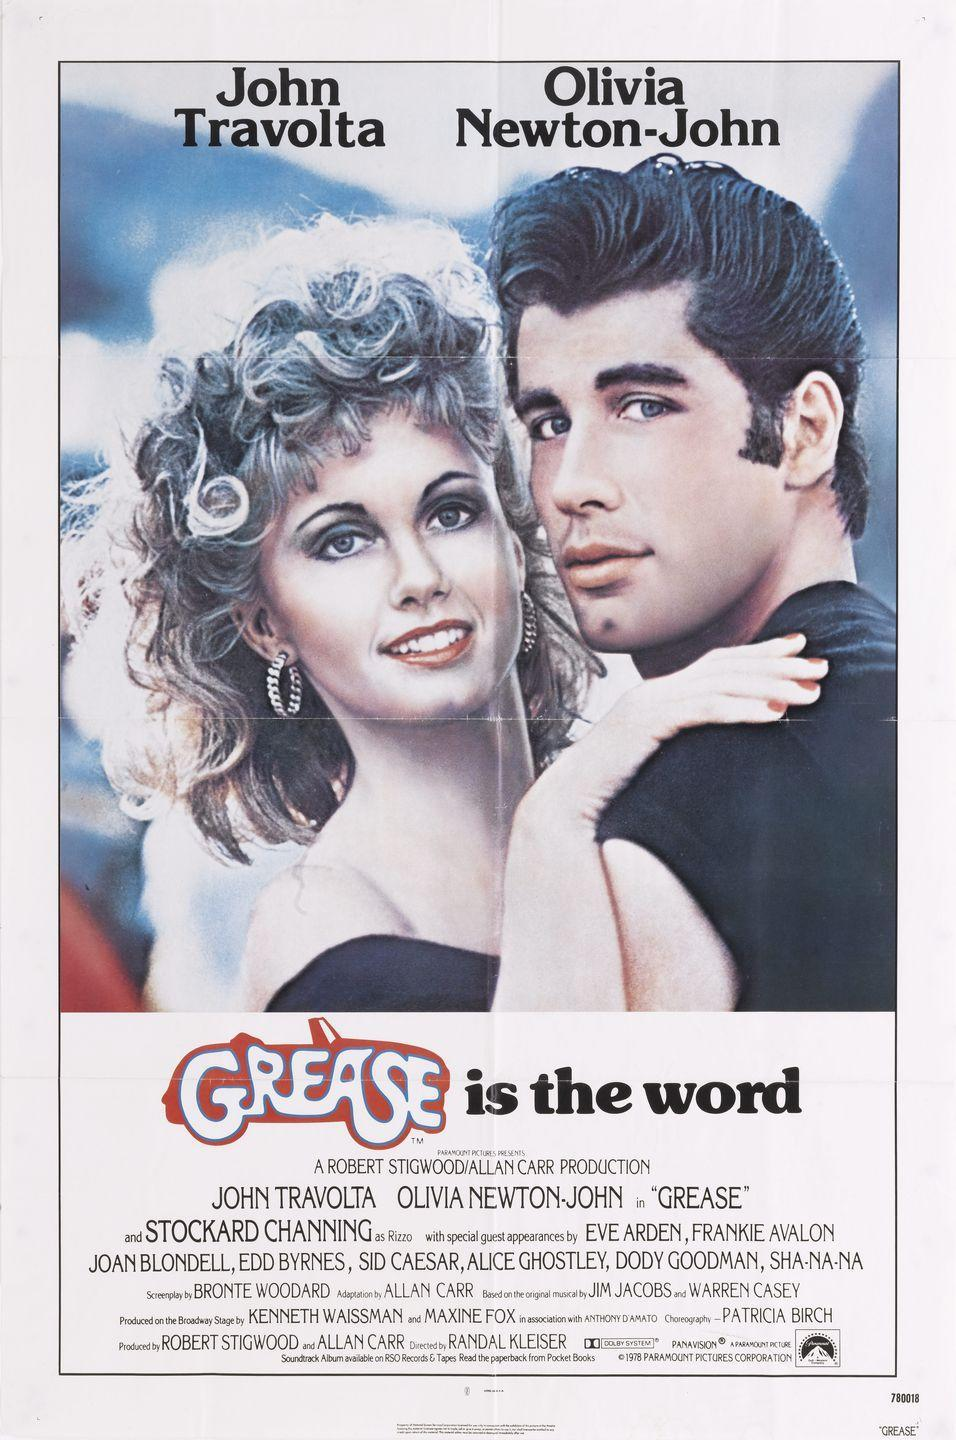 <p><em>Grease</em> was the word in 1978! The ones parents wanted? Danny Zuko and Sandy Olsson. Daniel was No. 11 for boys, while Sandy moved from 315 up to 274. And yes, Michael, Jason, Christopher, Jennifer, Melissa, and Jessica stayed on the charts that year, too.</p>